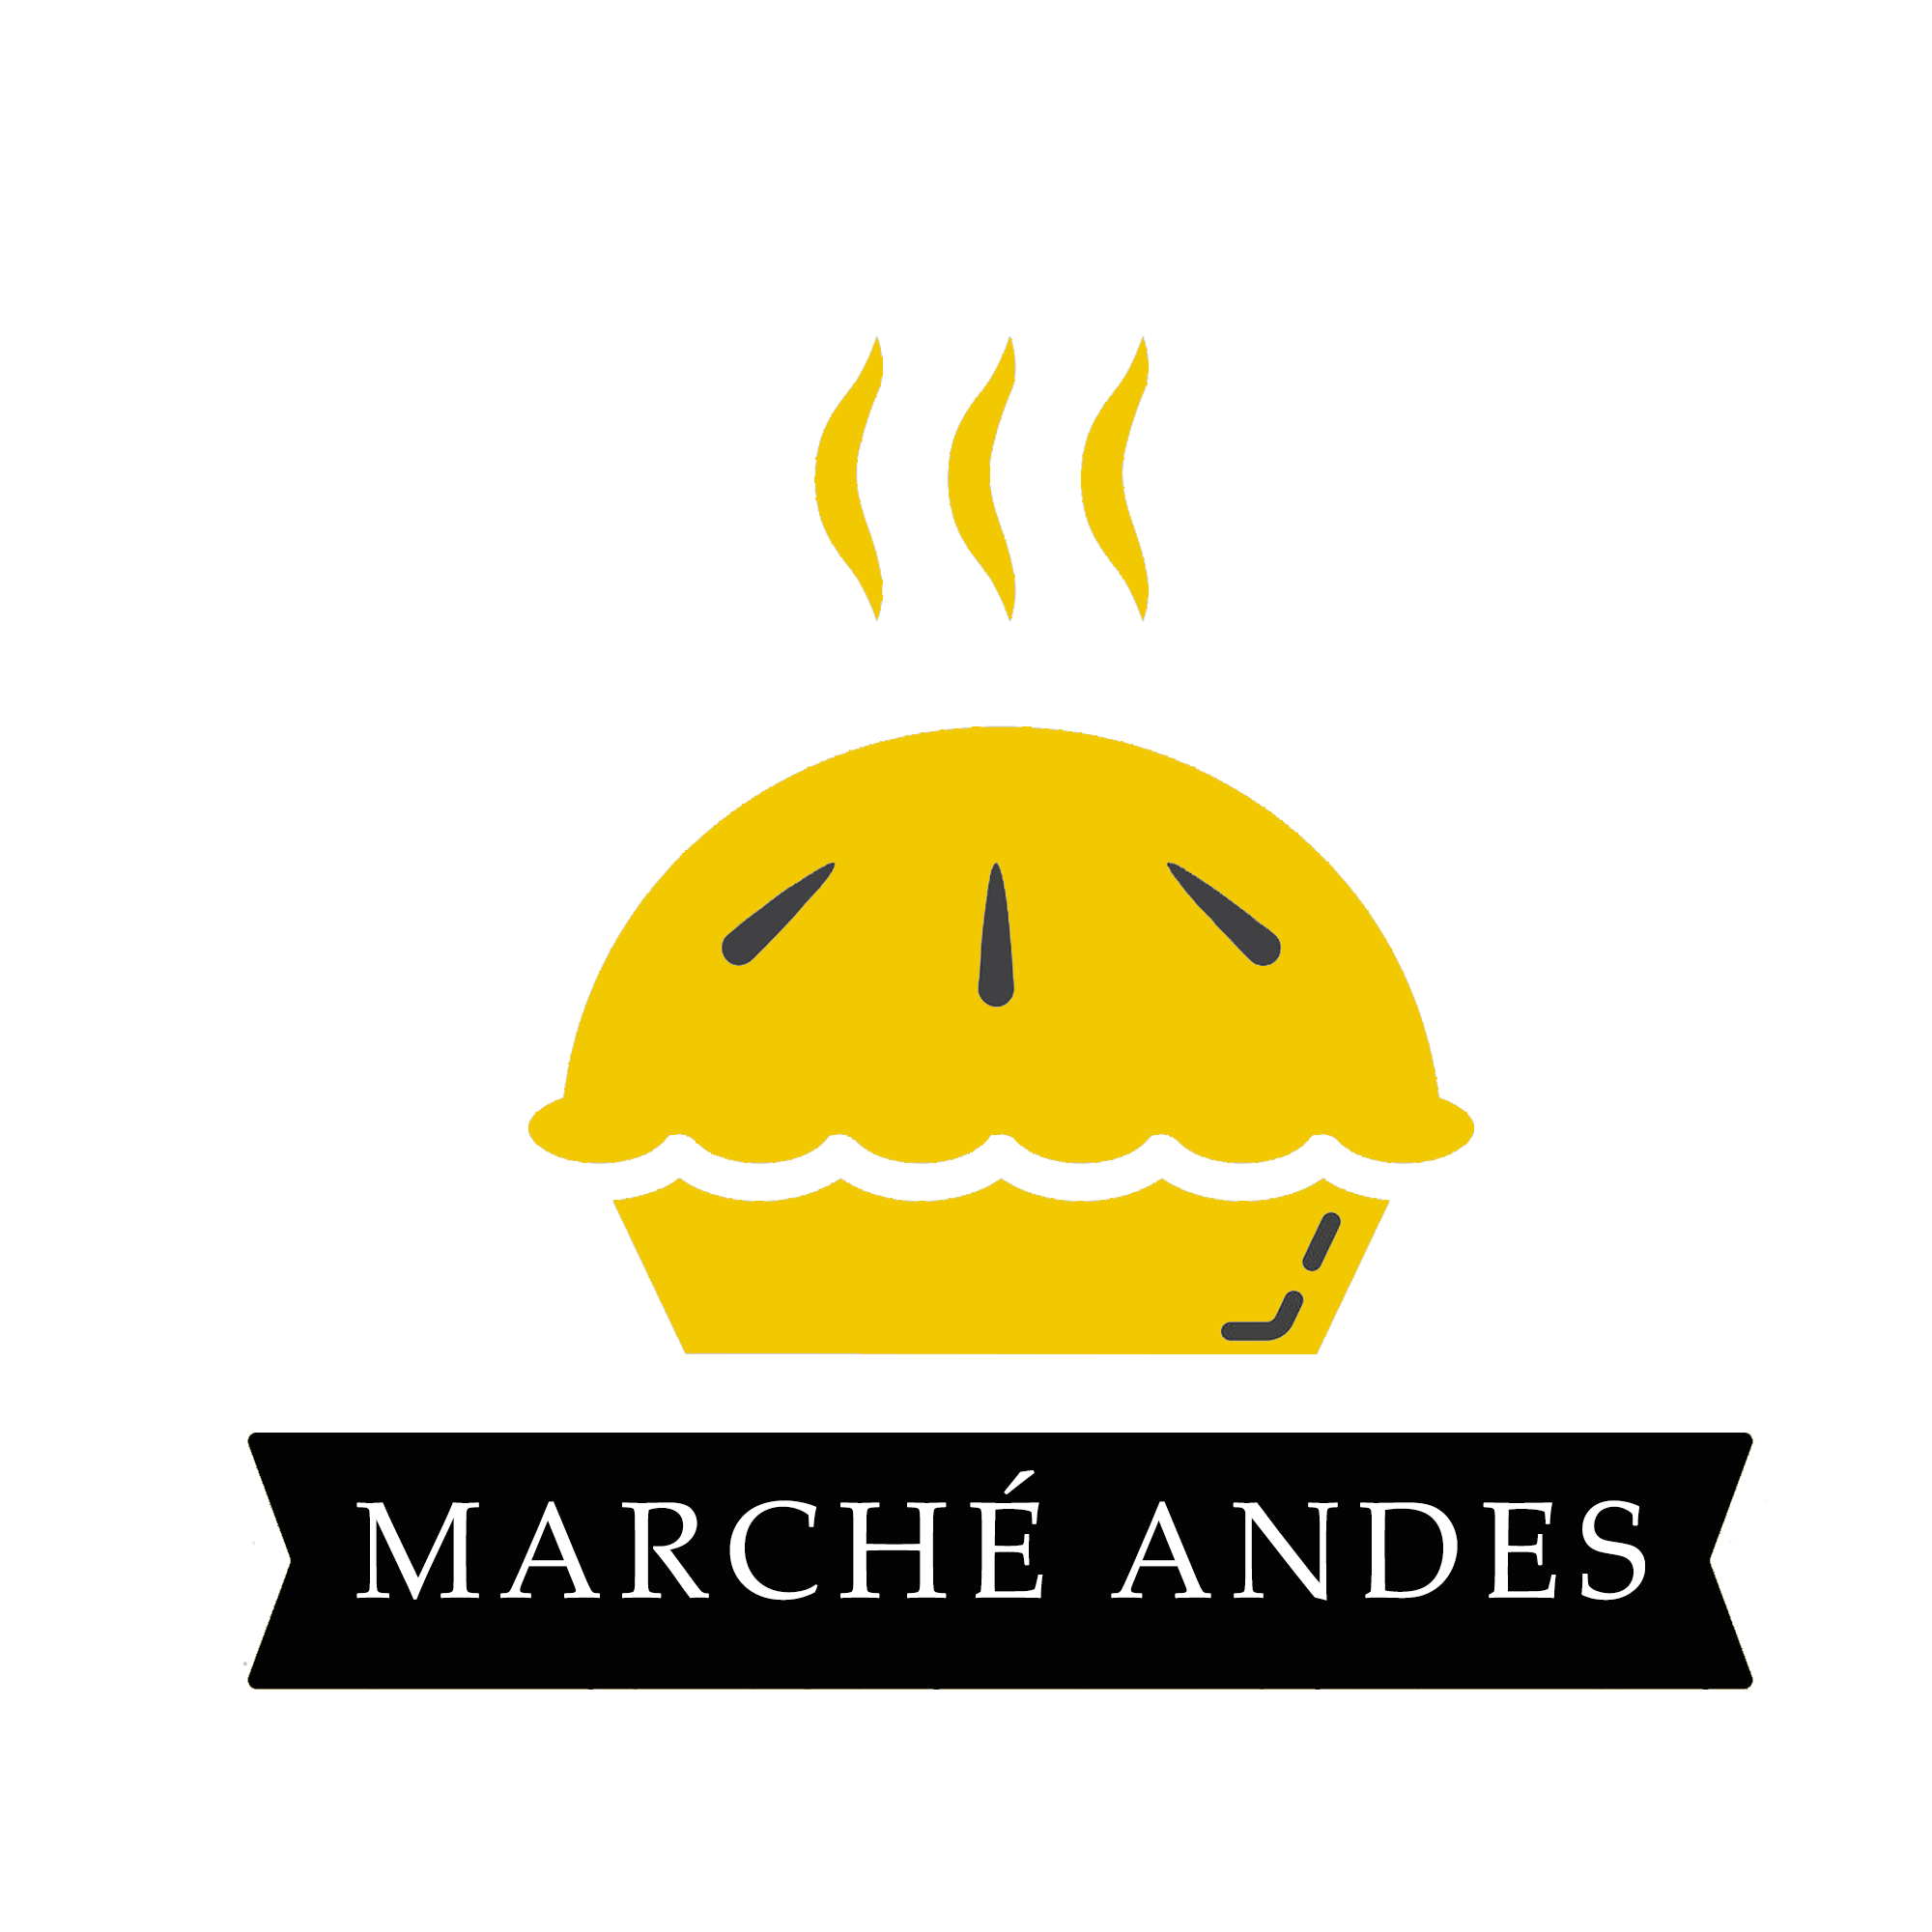 Bakery Marche Andes